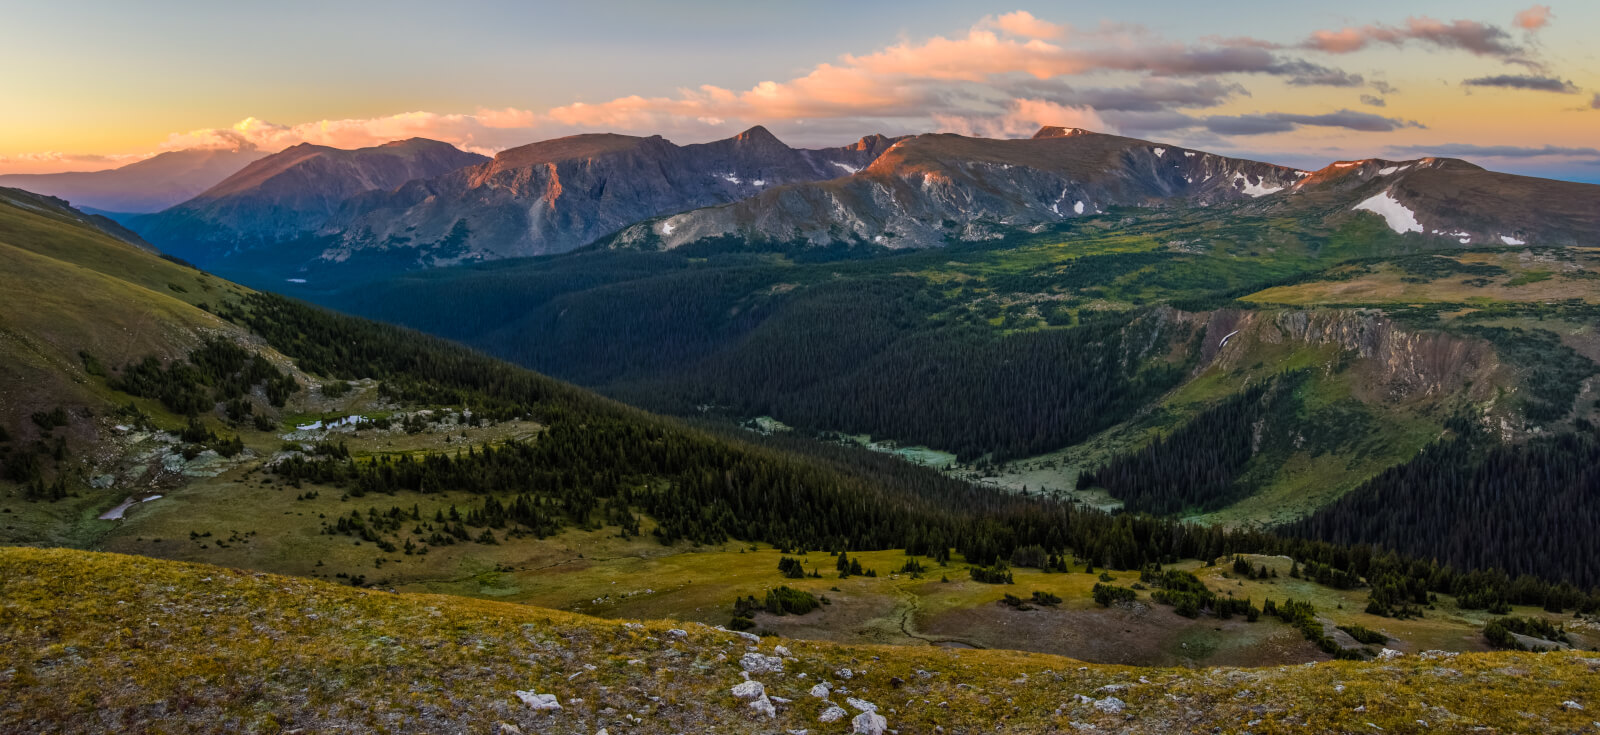 Road Trip to Rocky Mountain National Park | VacationistUSA